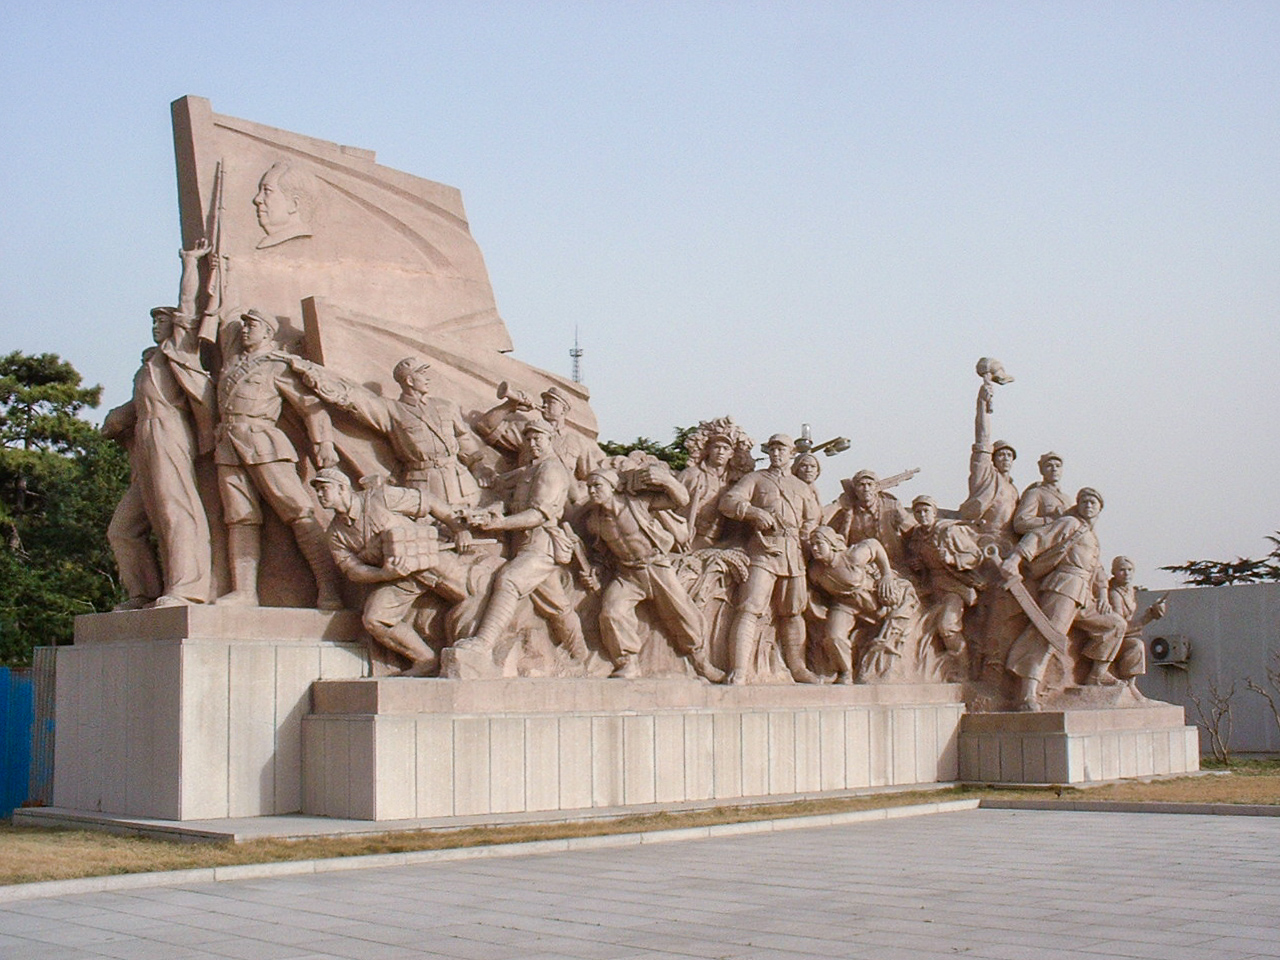 Monument in front of Mao's Mausoleum